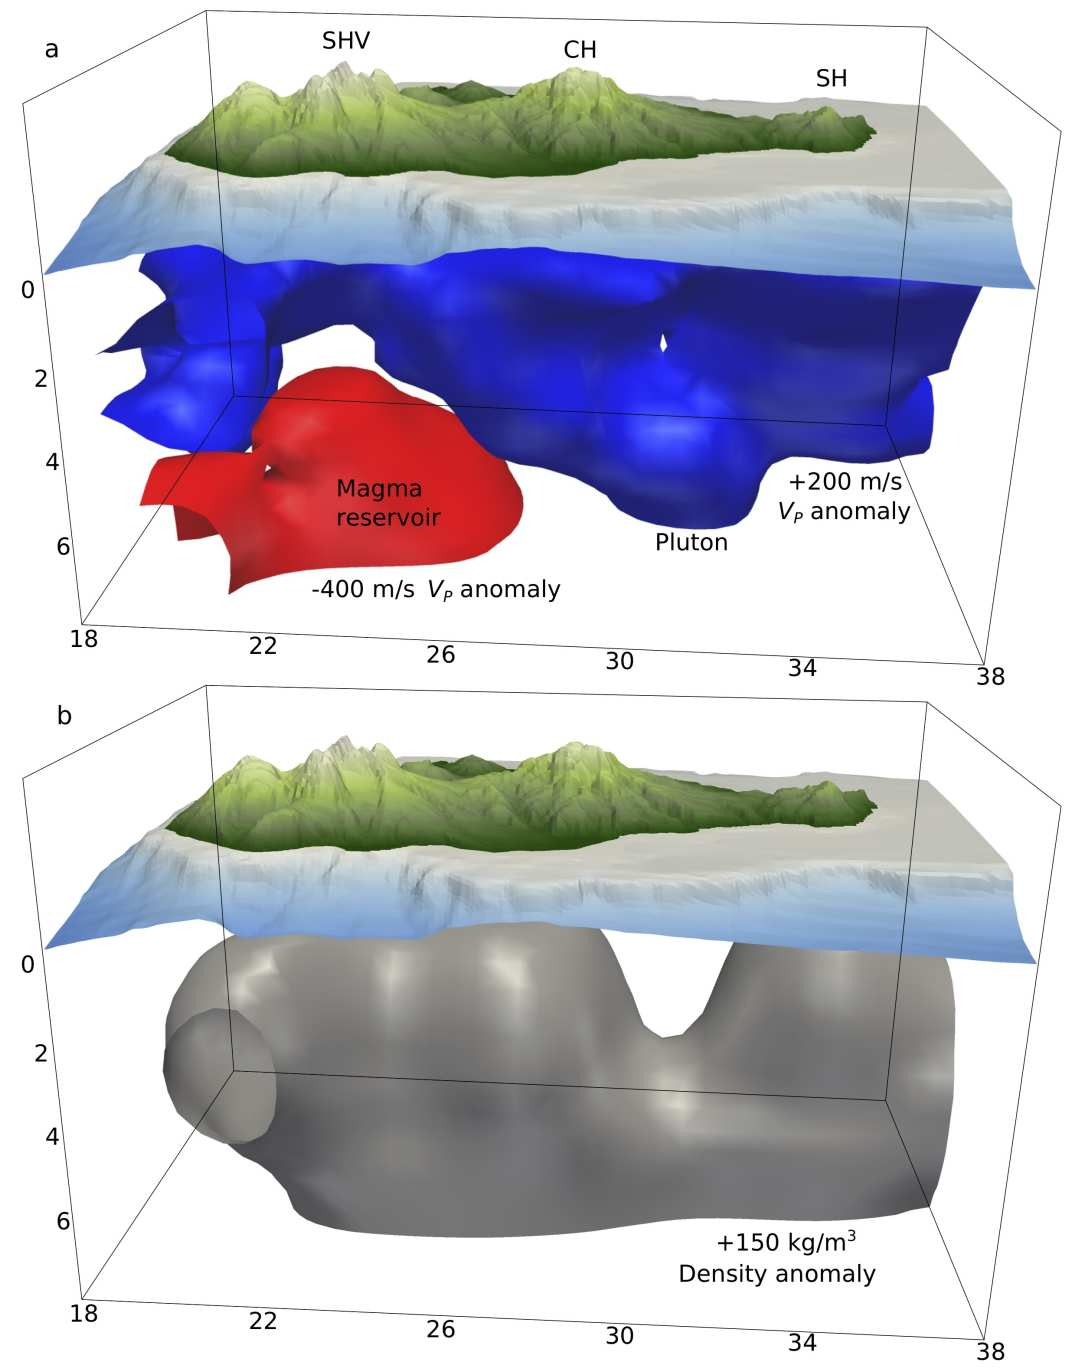 3d view of the magmatic system